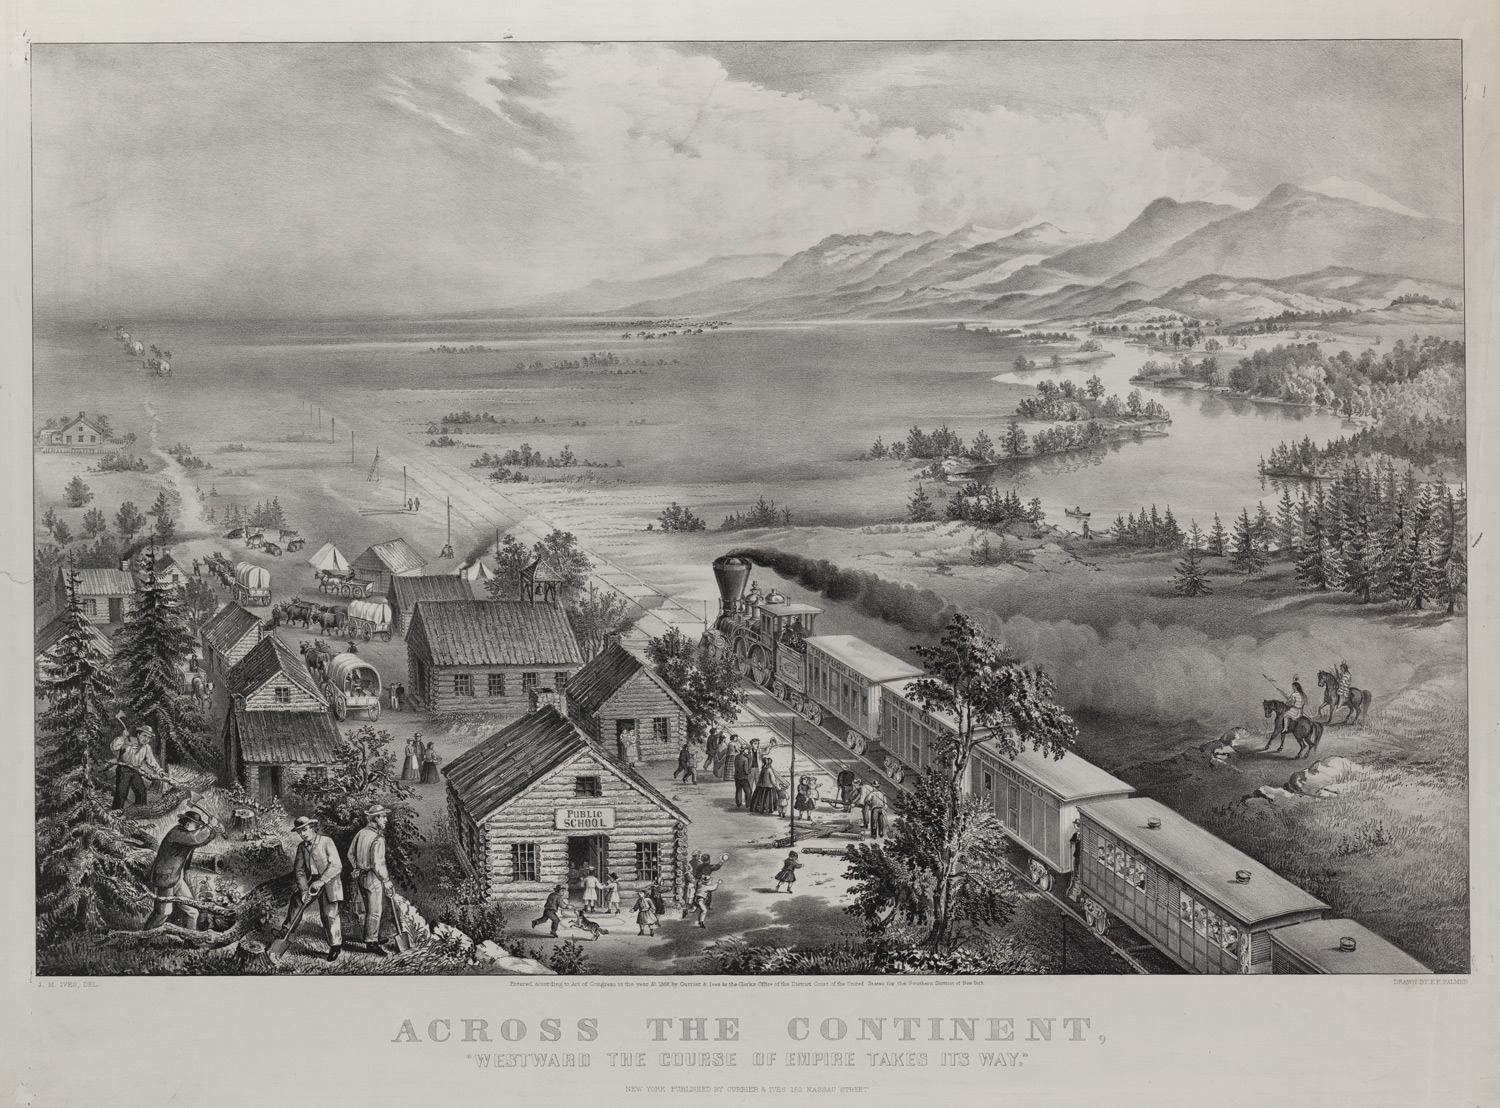 american ns and the transcontinental railroad the gilder across the continent currier and ives 1868 library of congress